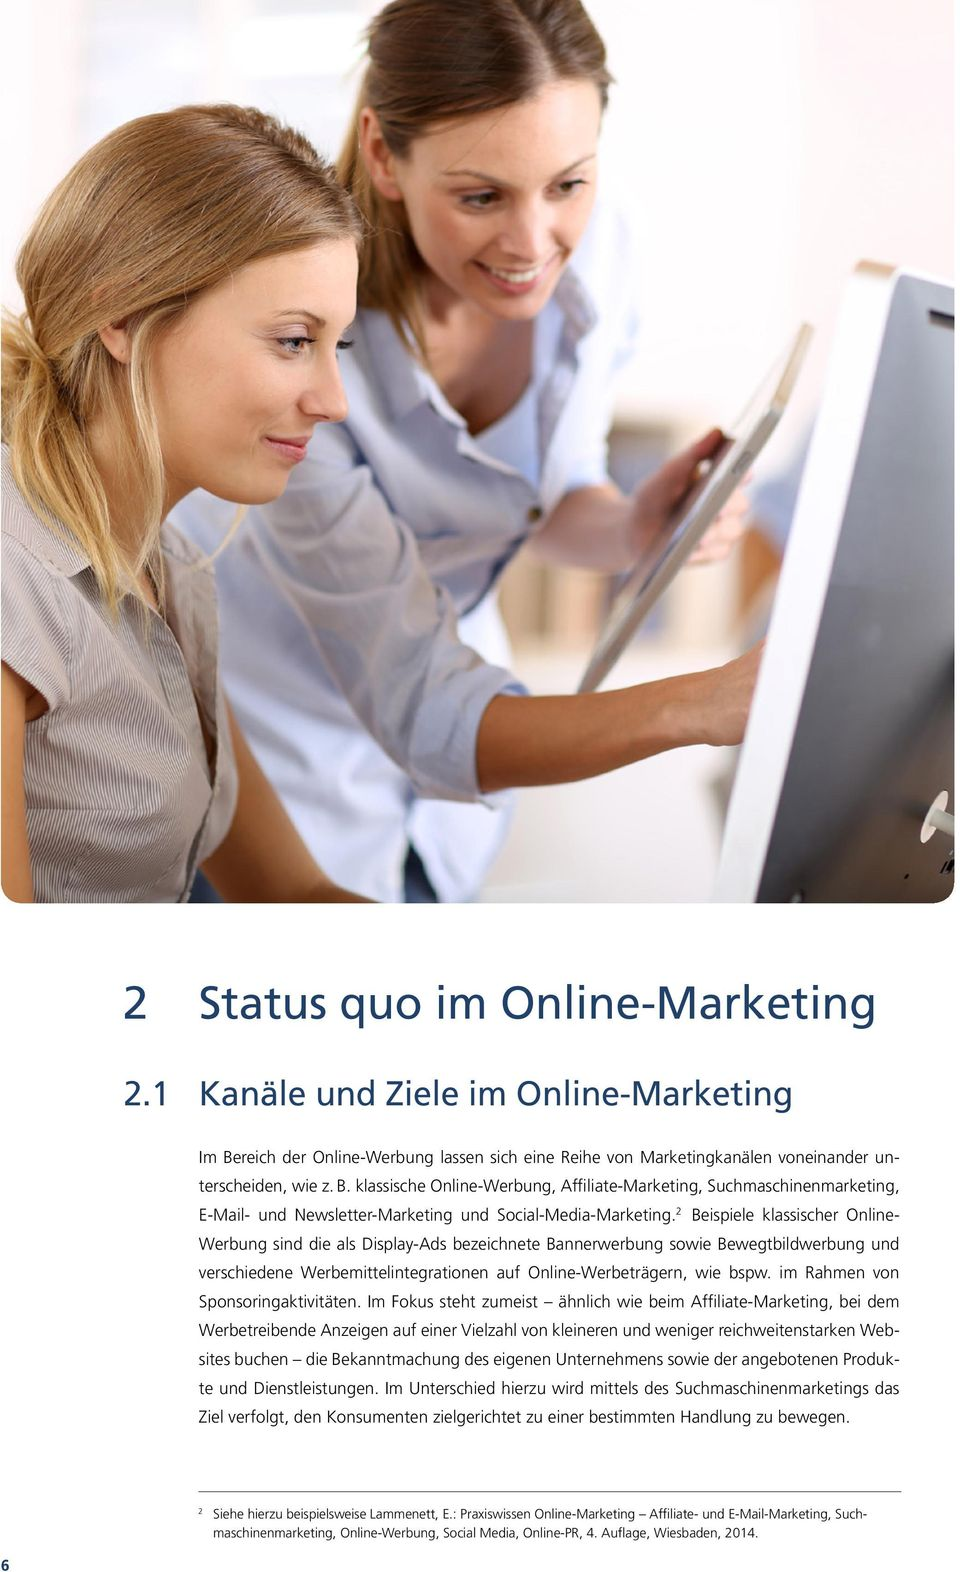 klassische Online-Werbung, Affiliate-Marketing, Suchmaschinenmarketing, E-Mail- und Newsletter-Marketing und Social-Media-Marketing.